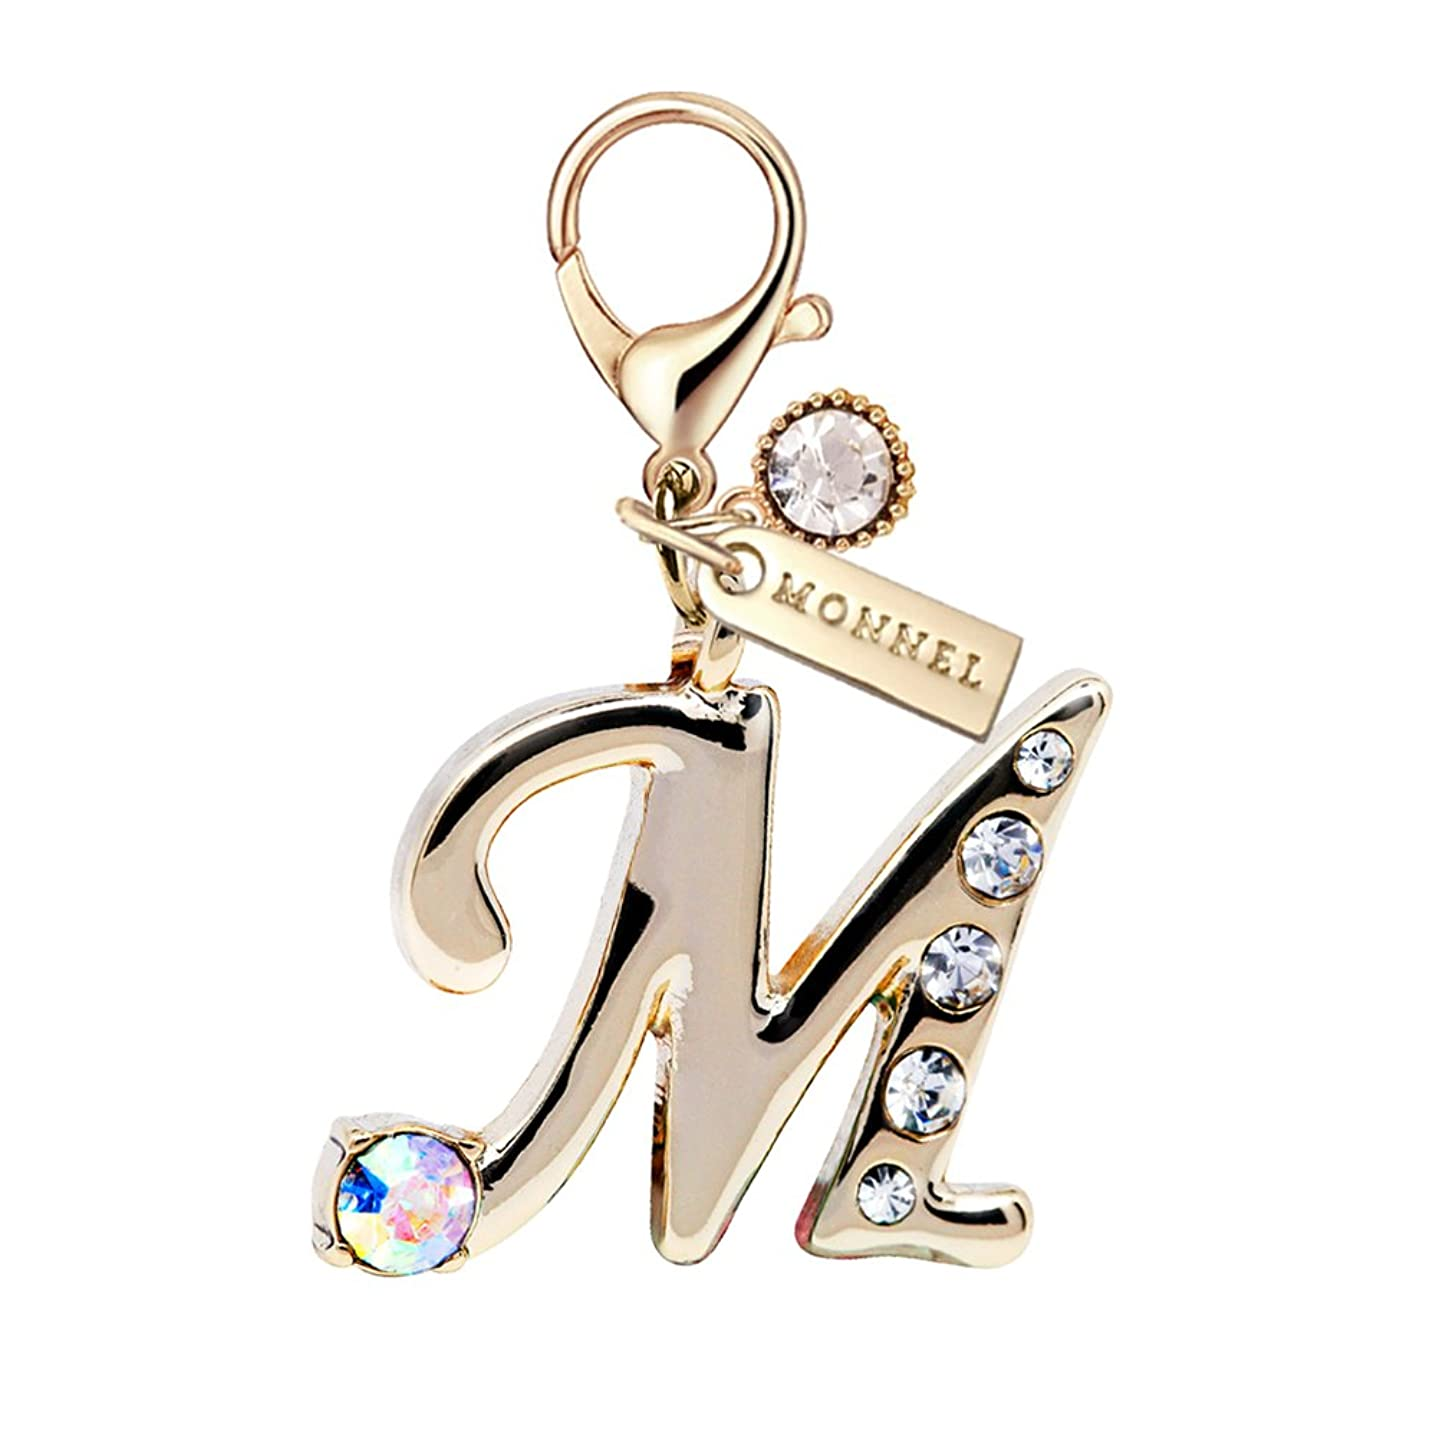 MC75 New Stylish Initial Letter M Crystal Alphabet Lobster Charm Pendant with Pouch Bag (1 Piece)